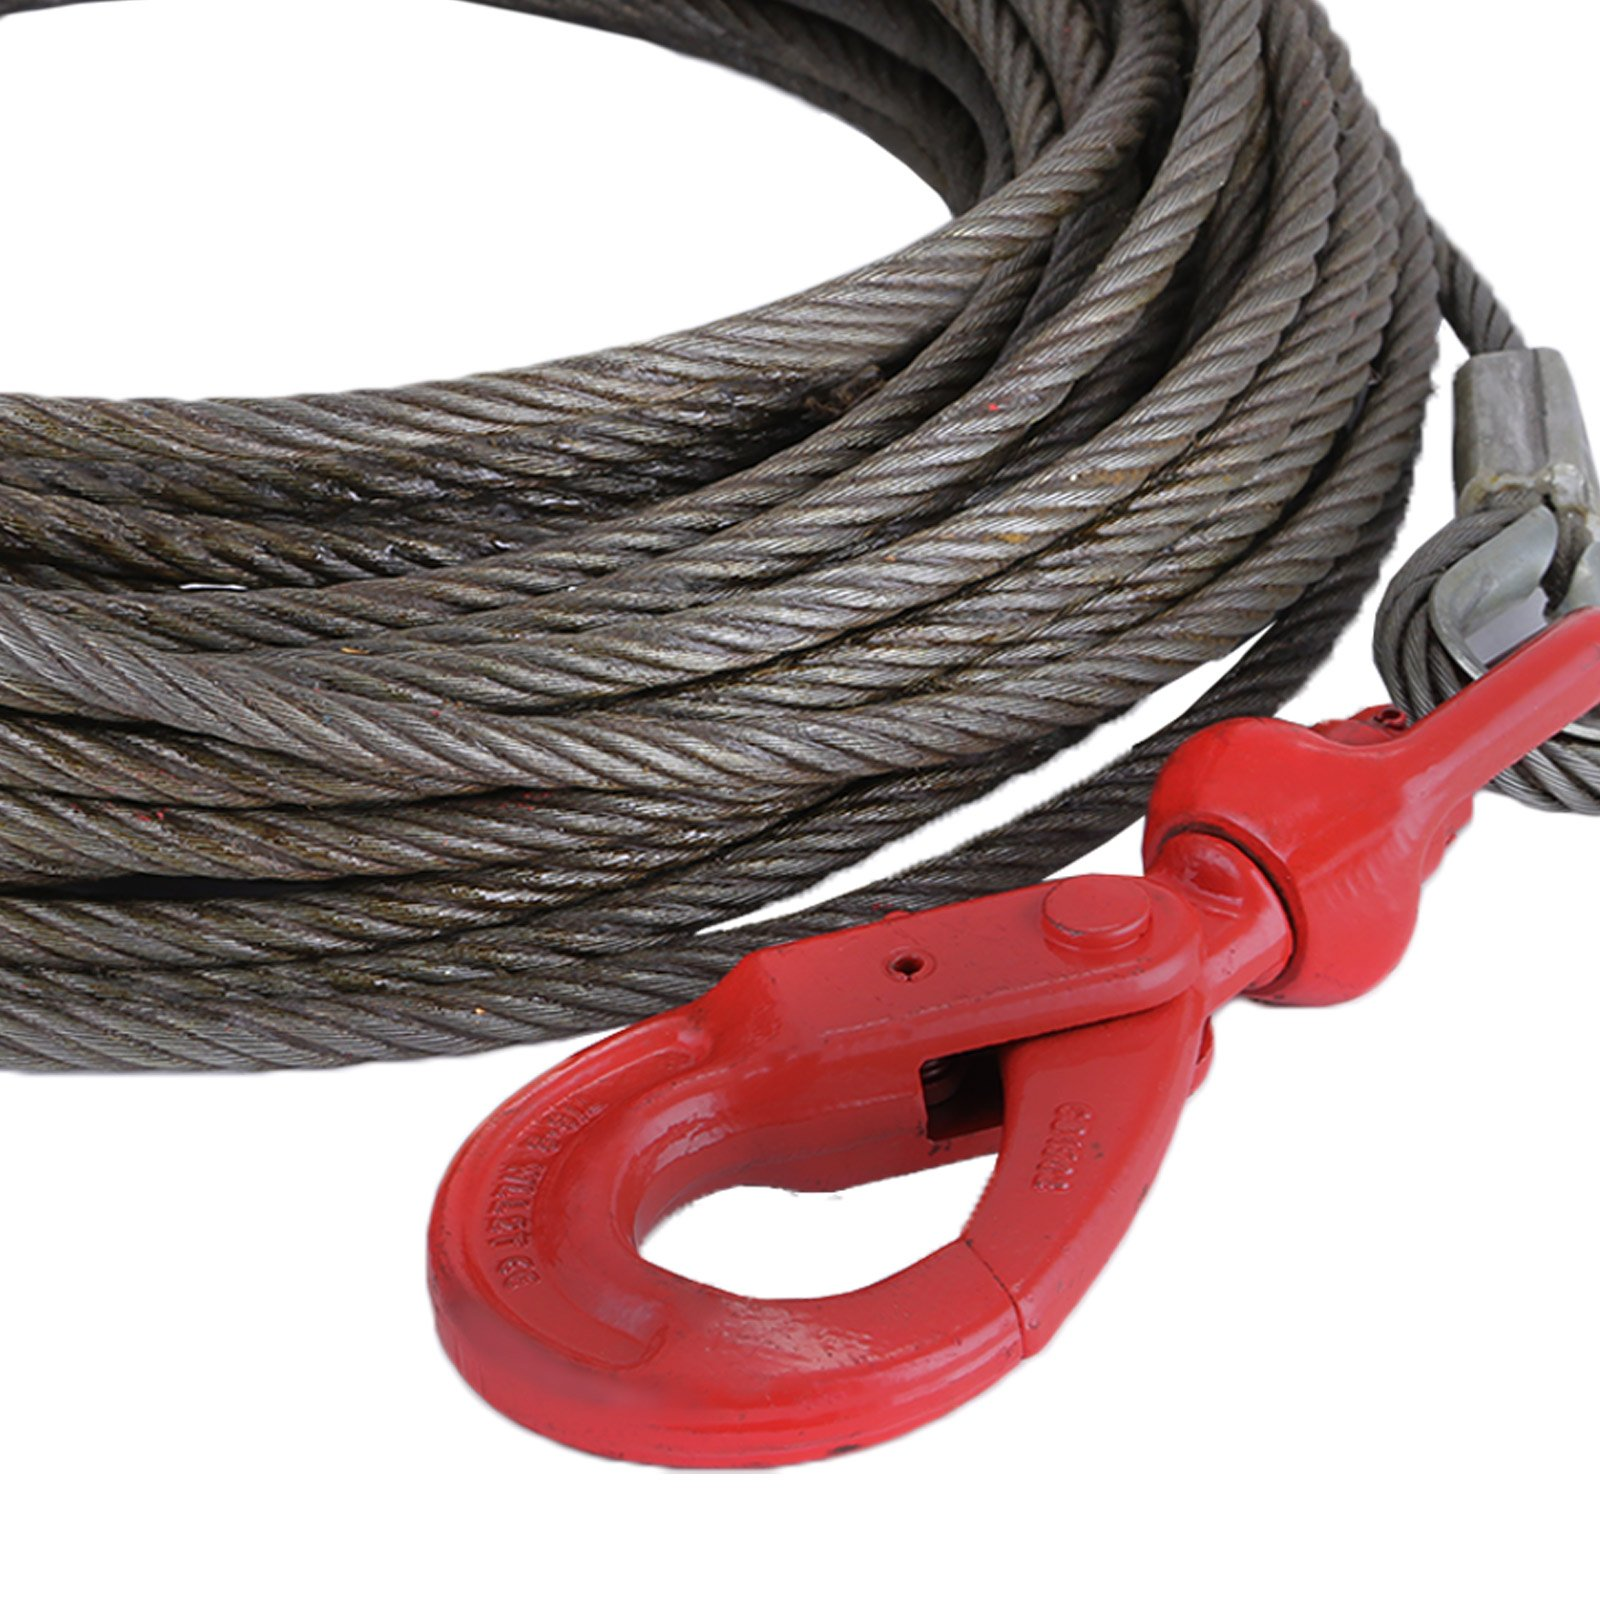 """LOVSHARE 3/8"""" 75 FT Wire Rope 2T Steel Core Winch Cable with Self Locking Swivel Hook Steel Cable for Tow Truck Flatbed (75 FT) by LOVSHARE (Image #7)"""